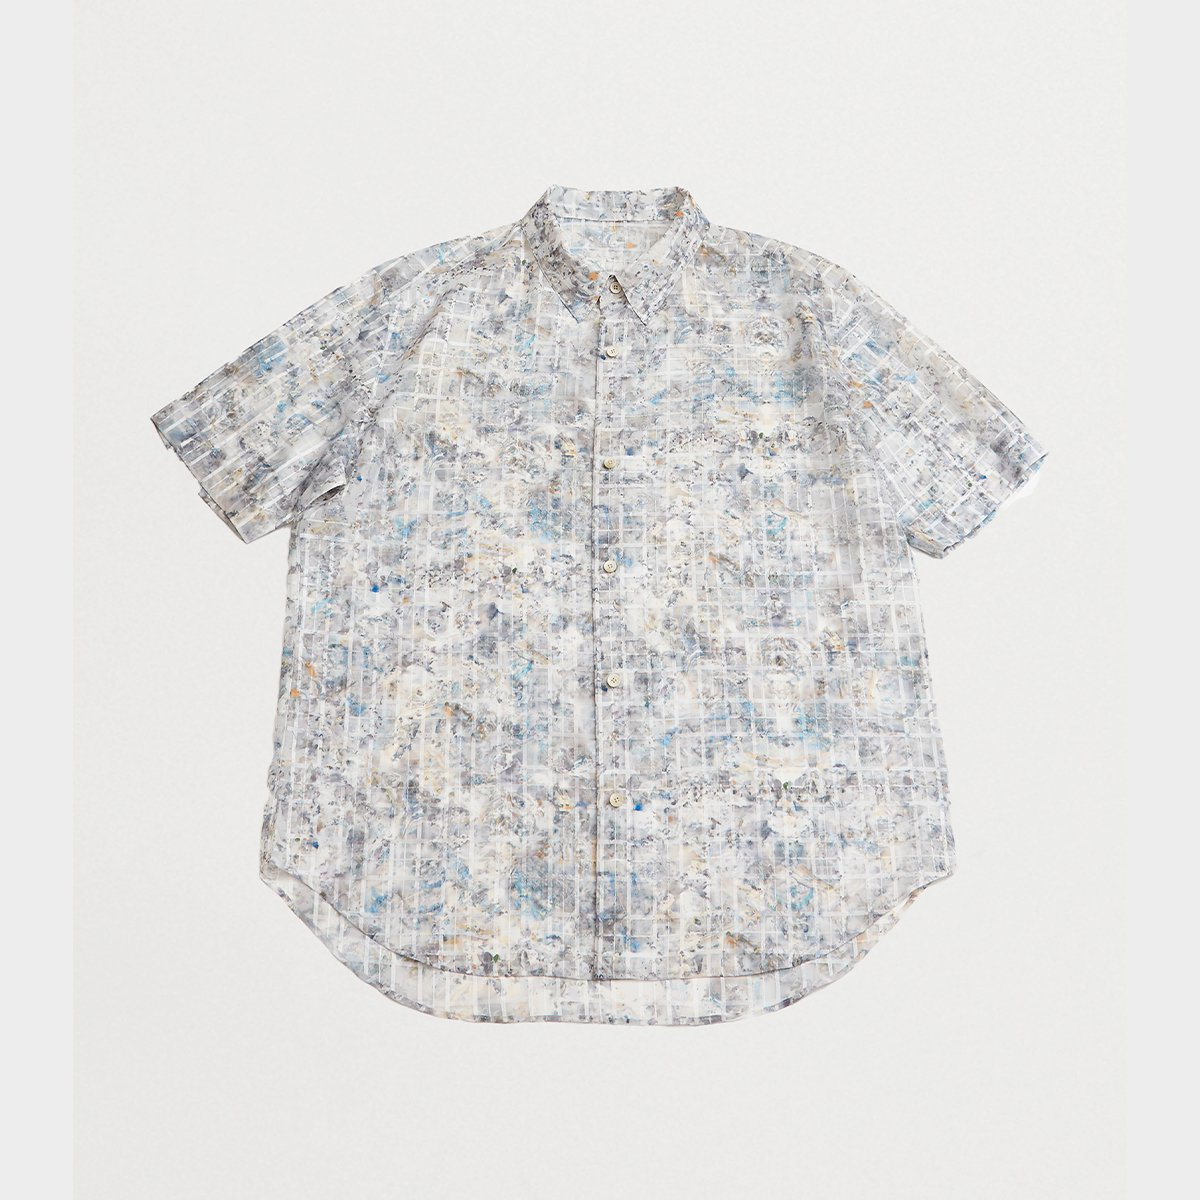 <img class='new_mark_img1' src='https://img.shop-pro.jp/img/new/icons5.gif' style='border:none;display:inline;margin:0px;padding:0px;width:auto;' />ITALIAN COLLAR SHORT-SLEEVED SHIRT / BLUE PRINT